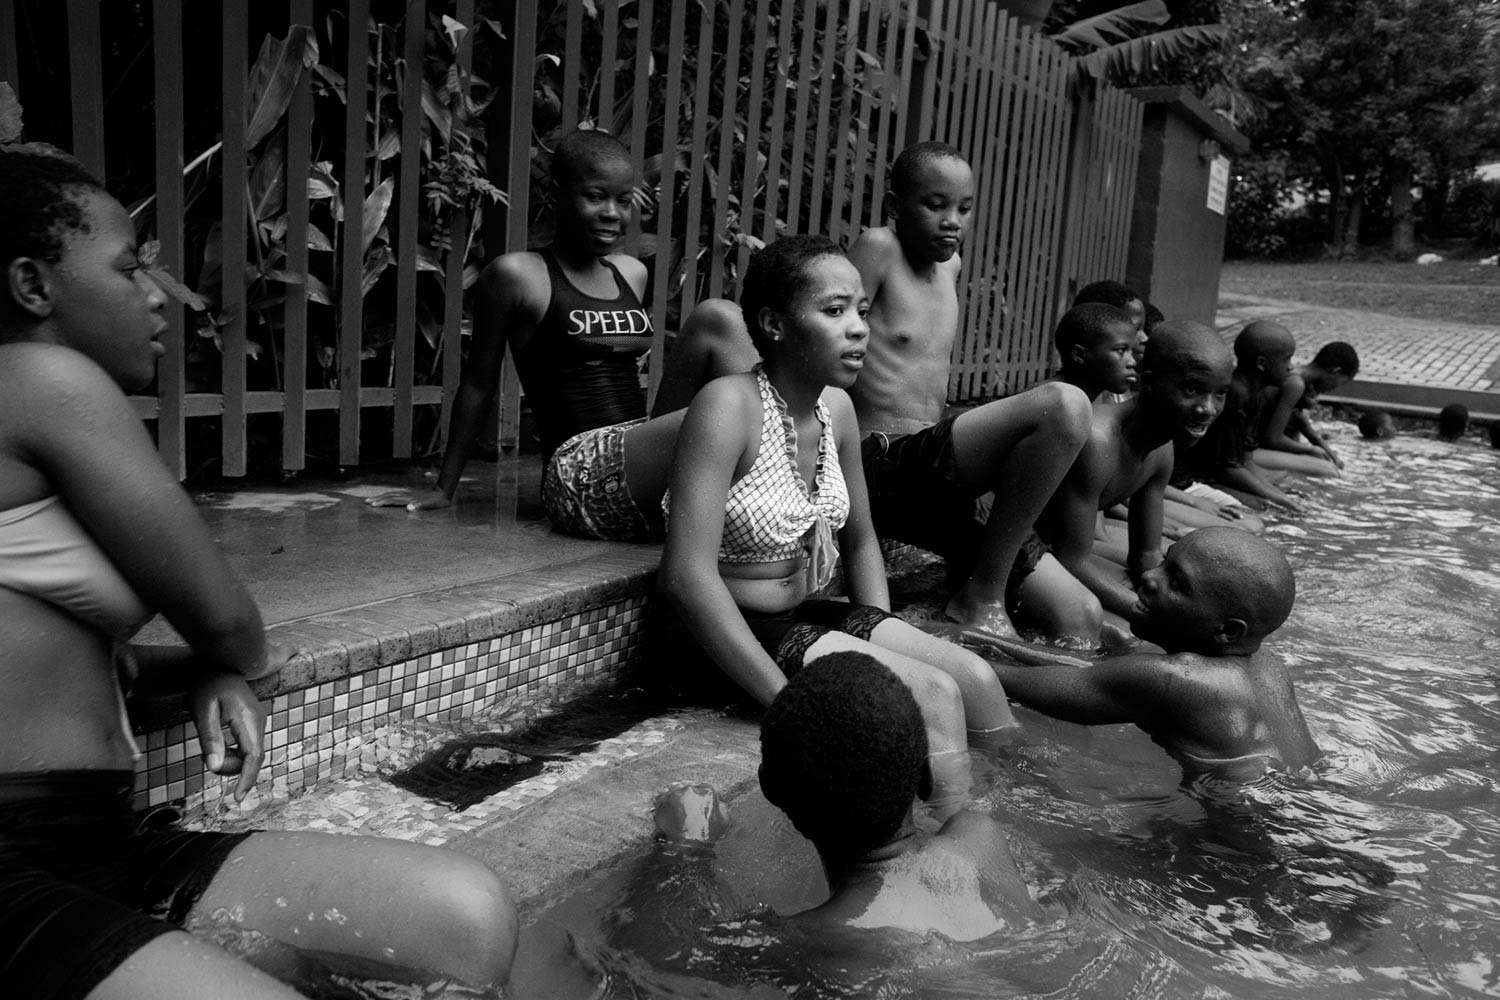 Young men flirt with teenage girls at a local swimming pool.